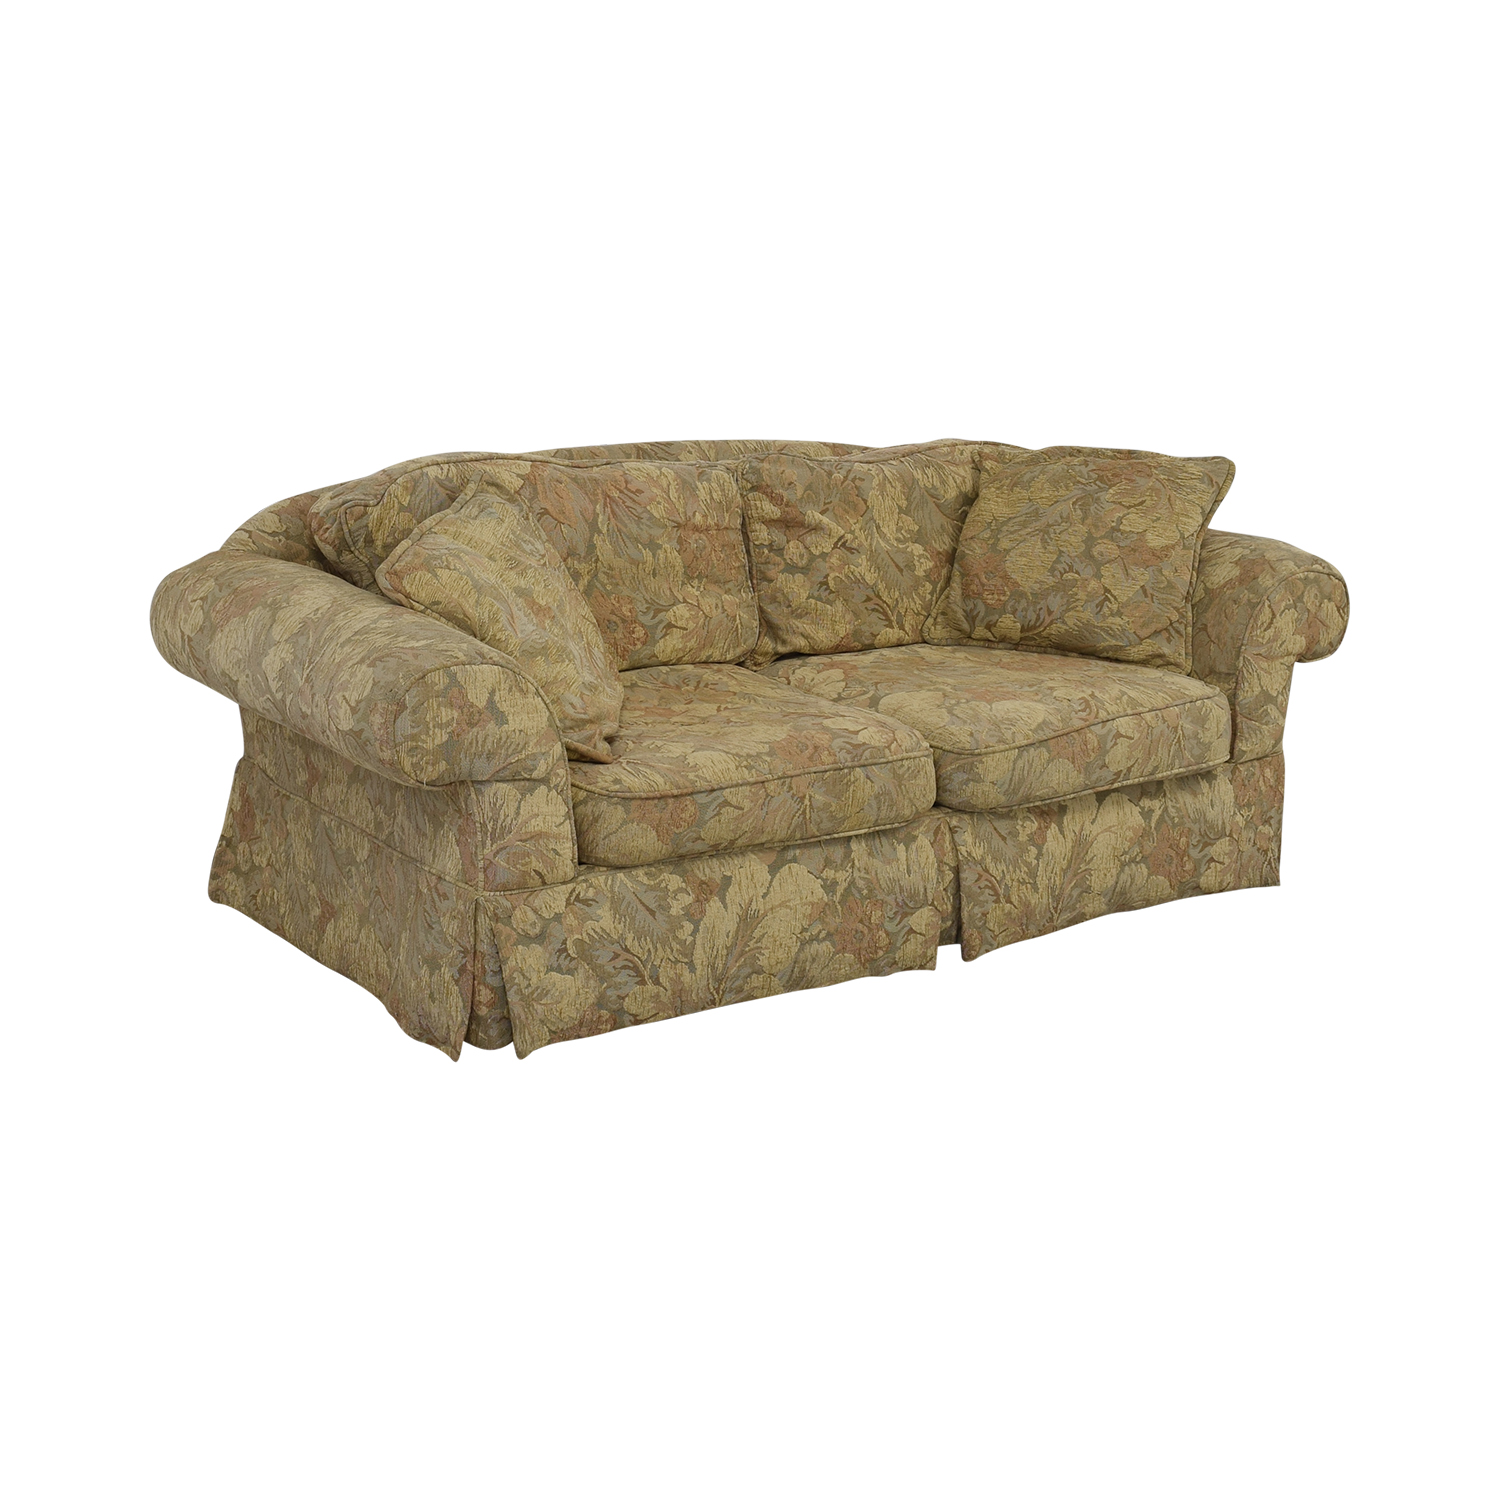 Bernhardt Bernhardt Two Cushion Sofa price